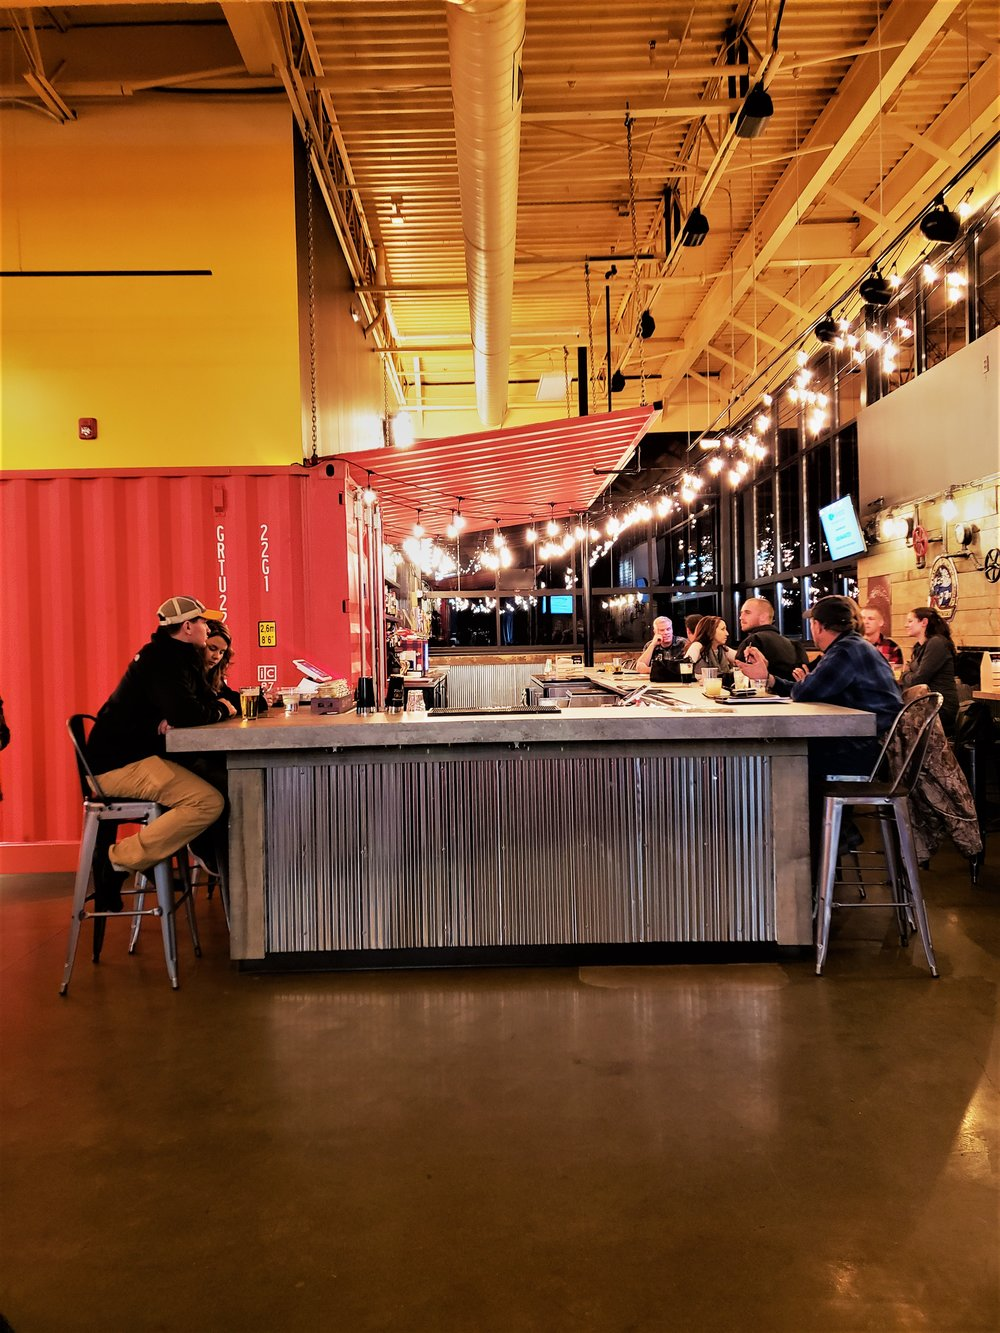 The bar at Victoria Burrow showcases shipping container decor